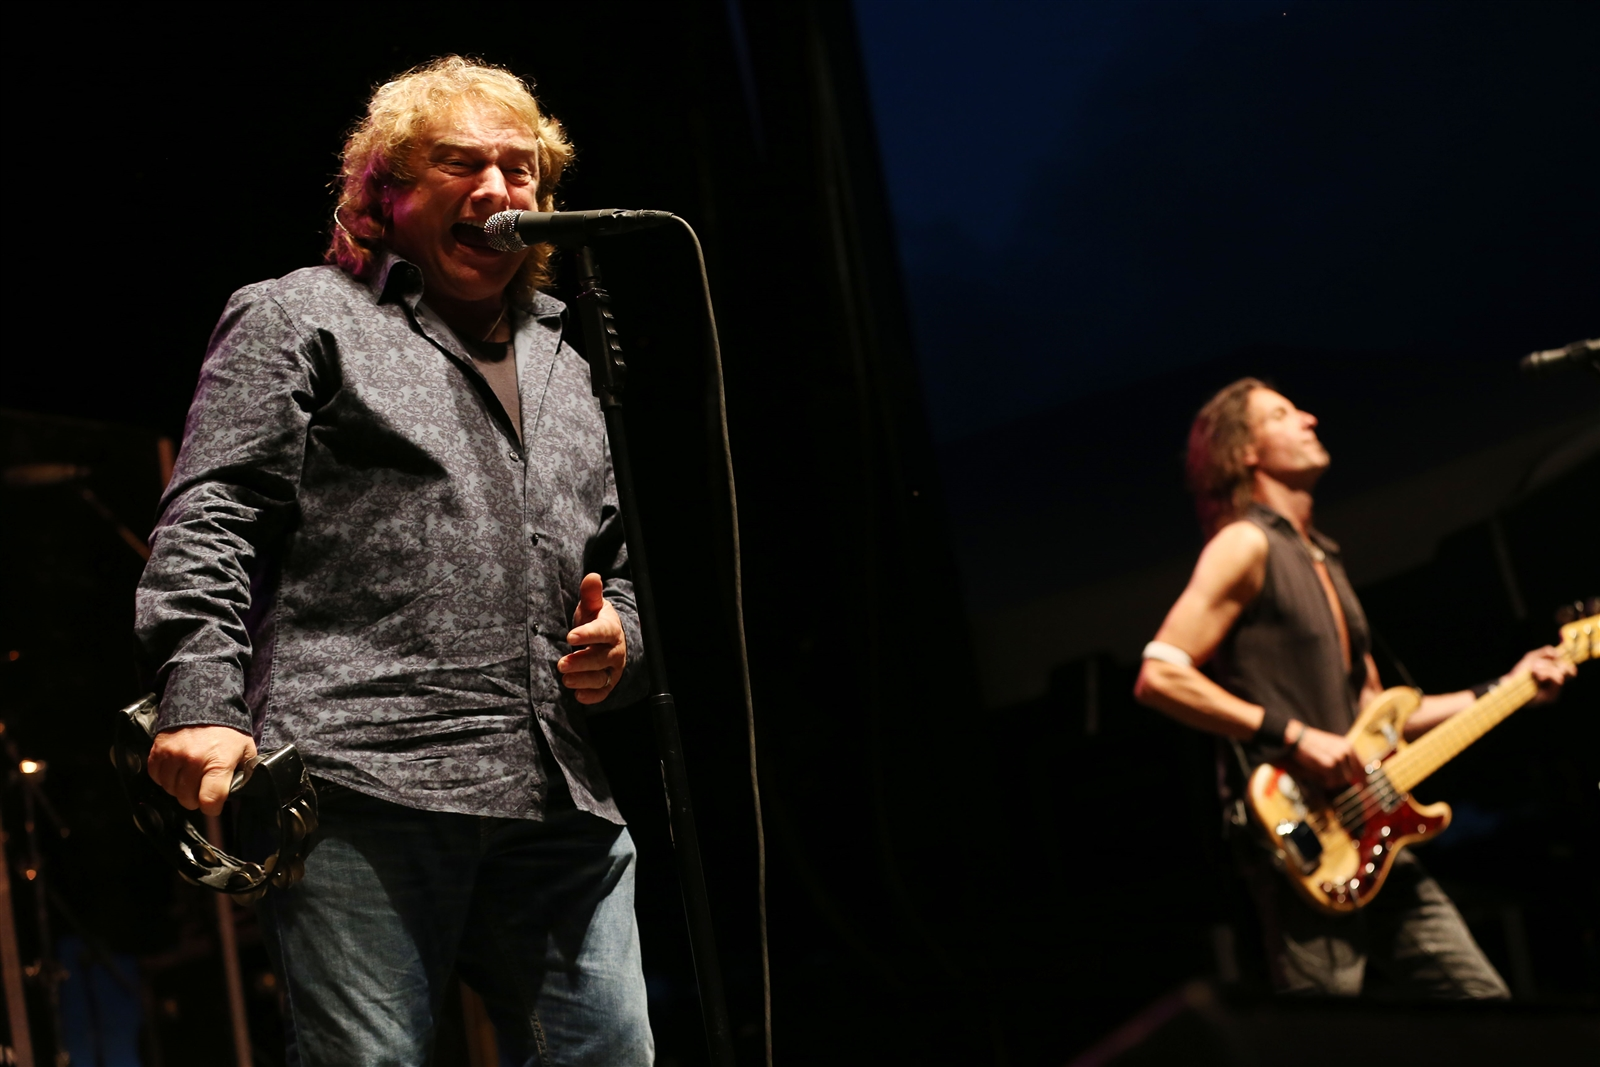 Former Foreigner frontman Lou Gramm will headline 'A Night of Symphonic Rock' on April 28 inside the Seneca Niagara Events Center. (Photo by Sharon Cantillon/Buffalo News file photo)